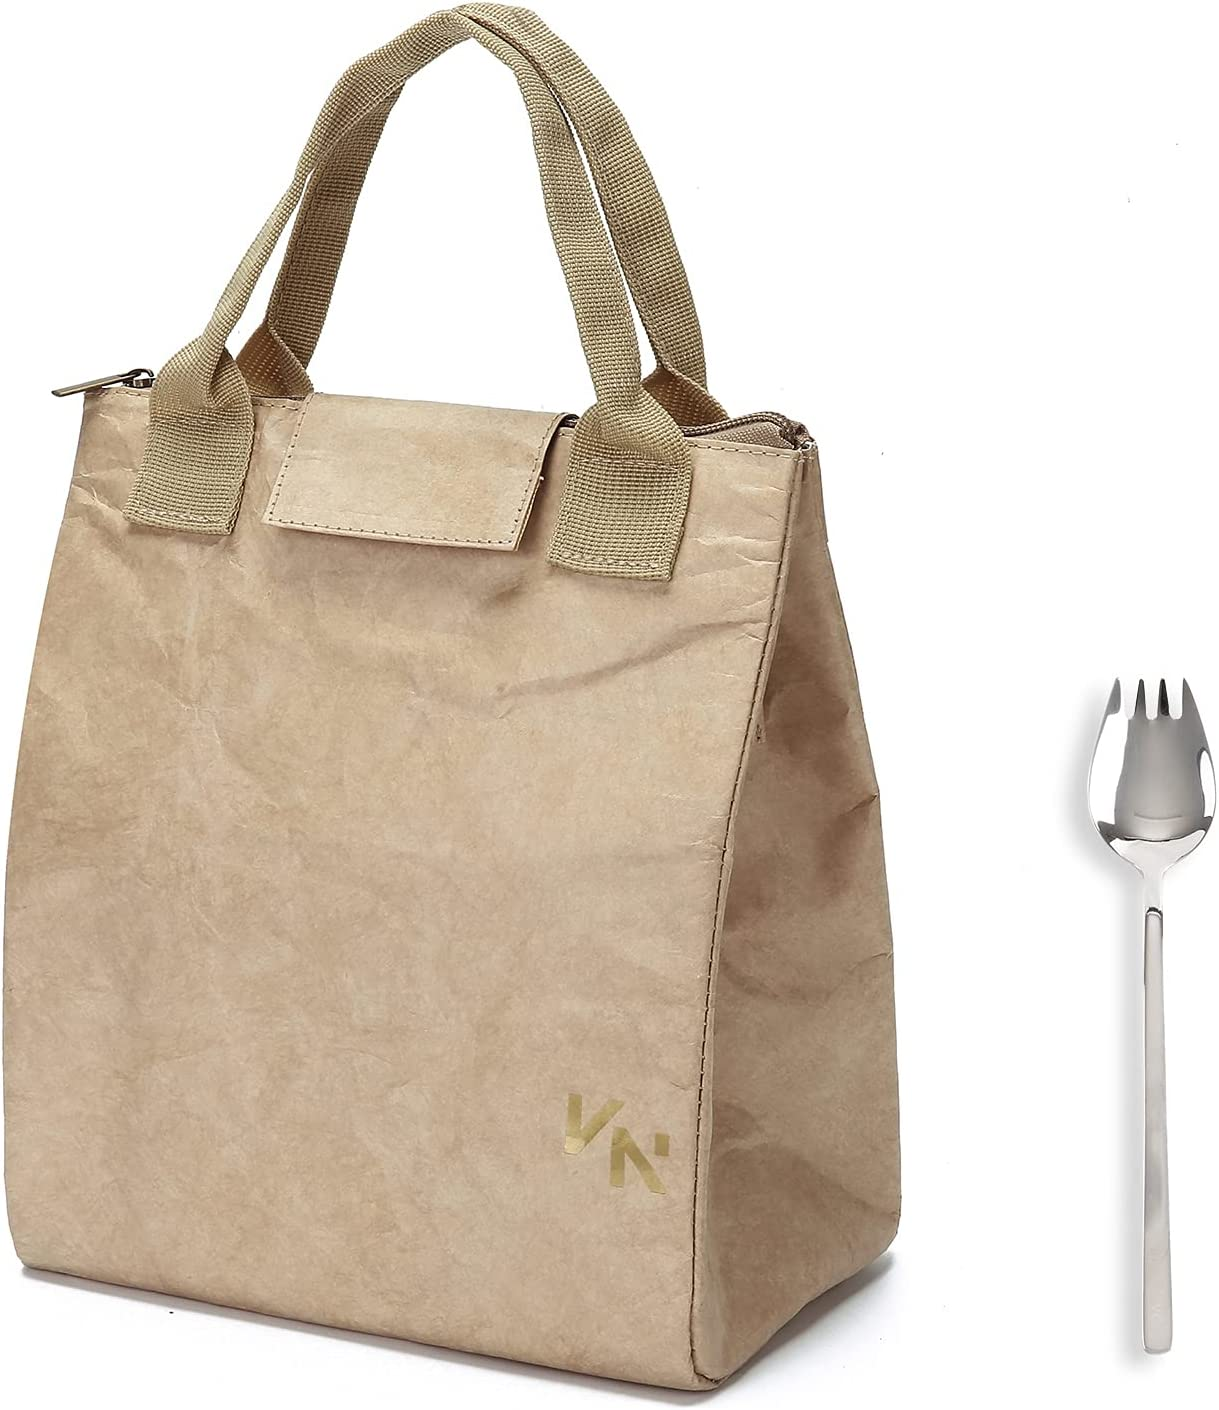 VonNova Tyvek Lunch Bag Insulated Large Lunch Tote Bag Reusable Thermal Food Container Durable and Leakproof Snack Bags Lunch Bag for Women Men Adults College Work Picnic Hiking (Beige)